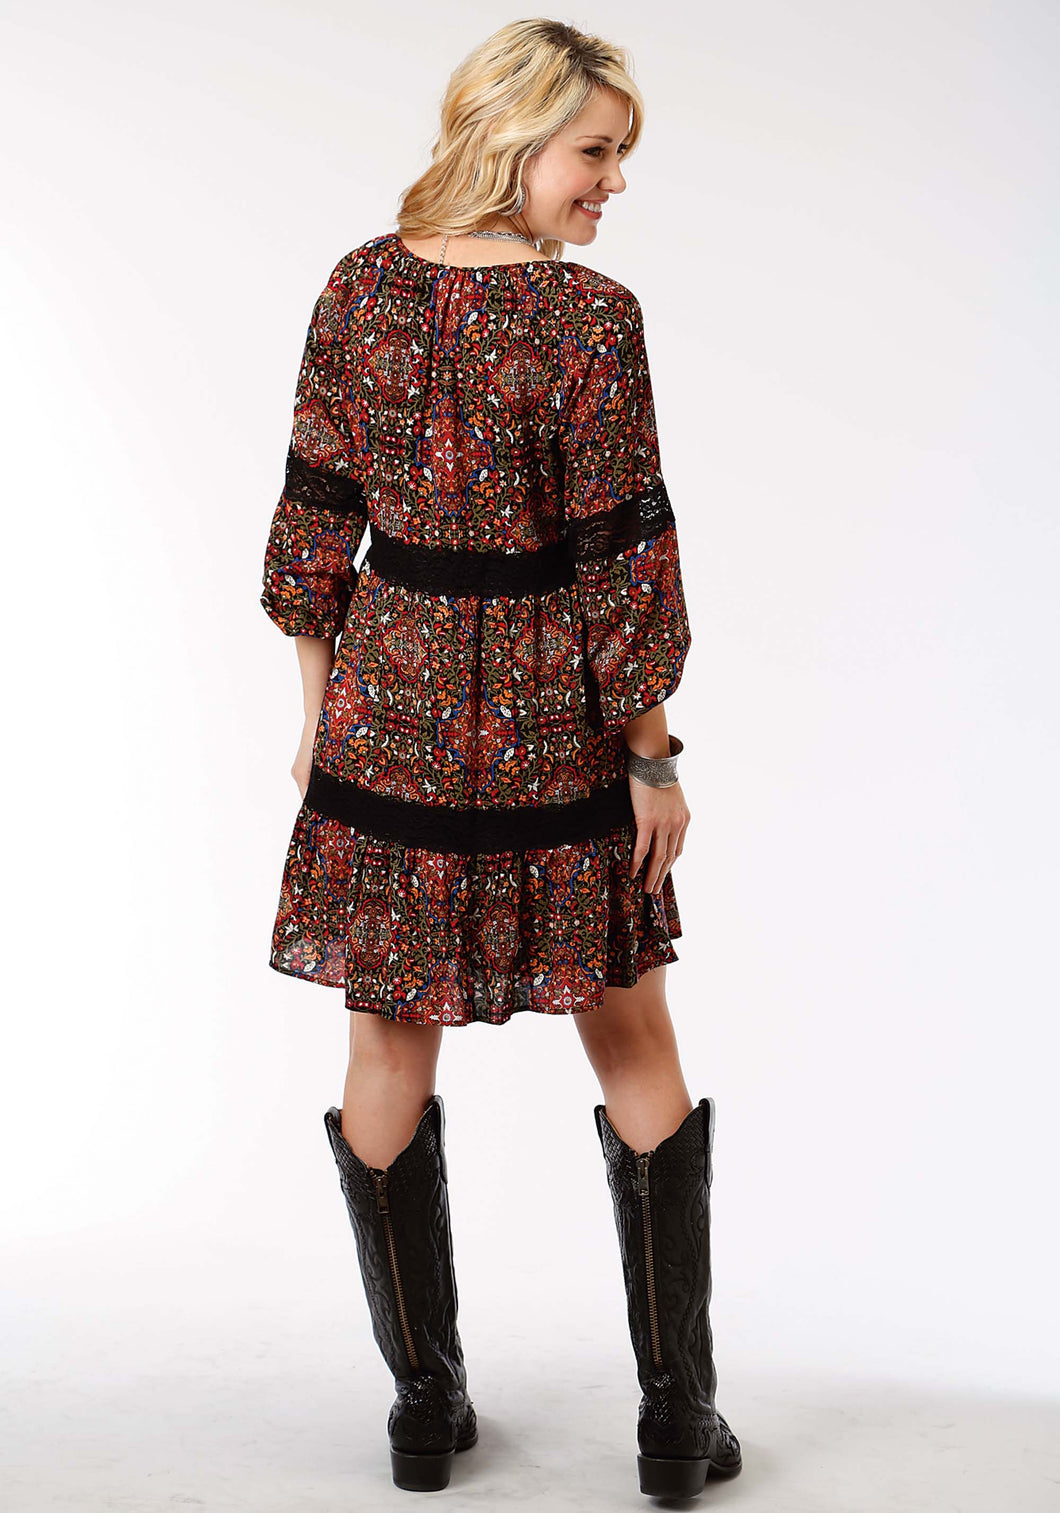 Studio West- Fiery Spirit Swest Womens Long Sleeve Dress 1295 Printed Rayon Peasant Tunic Dress